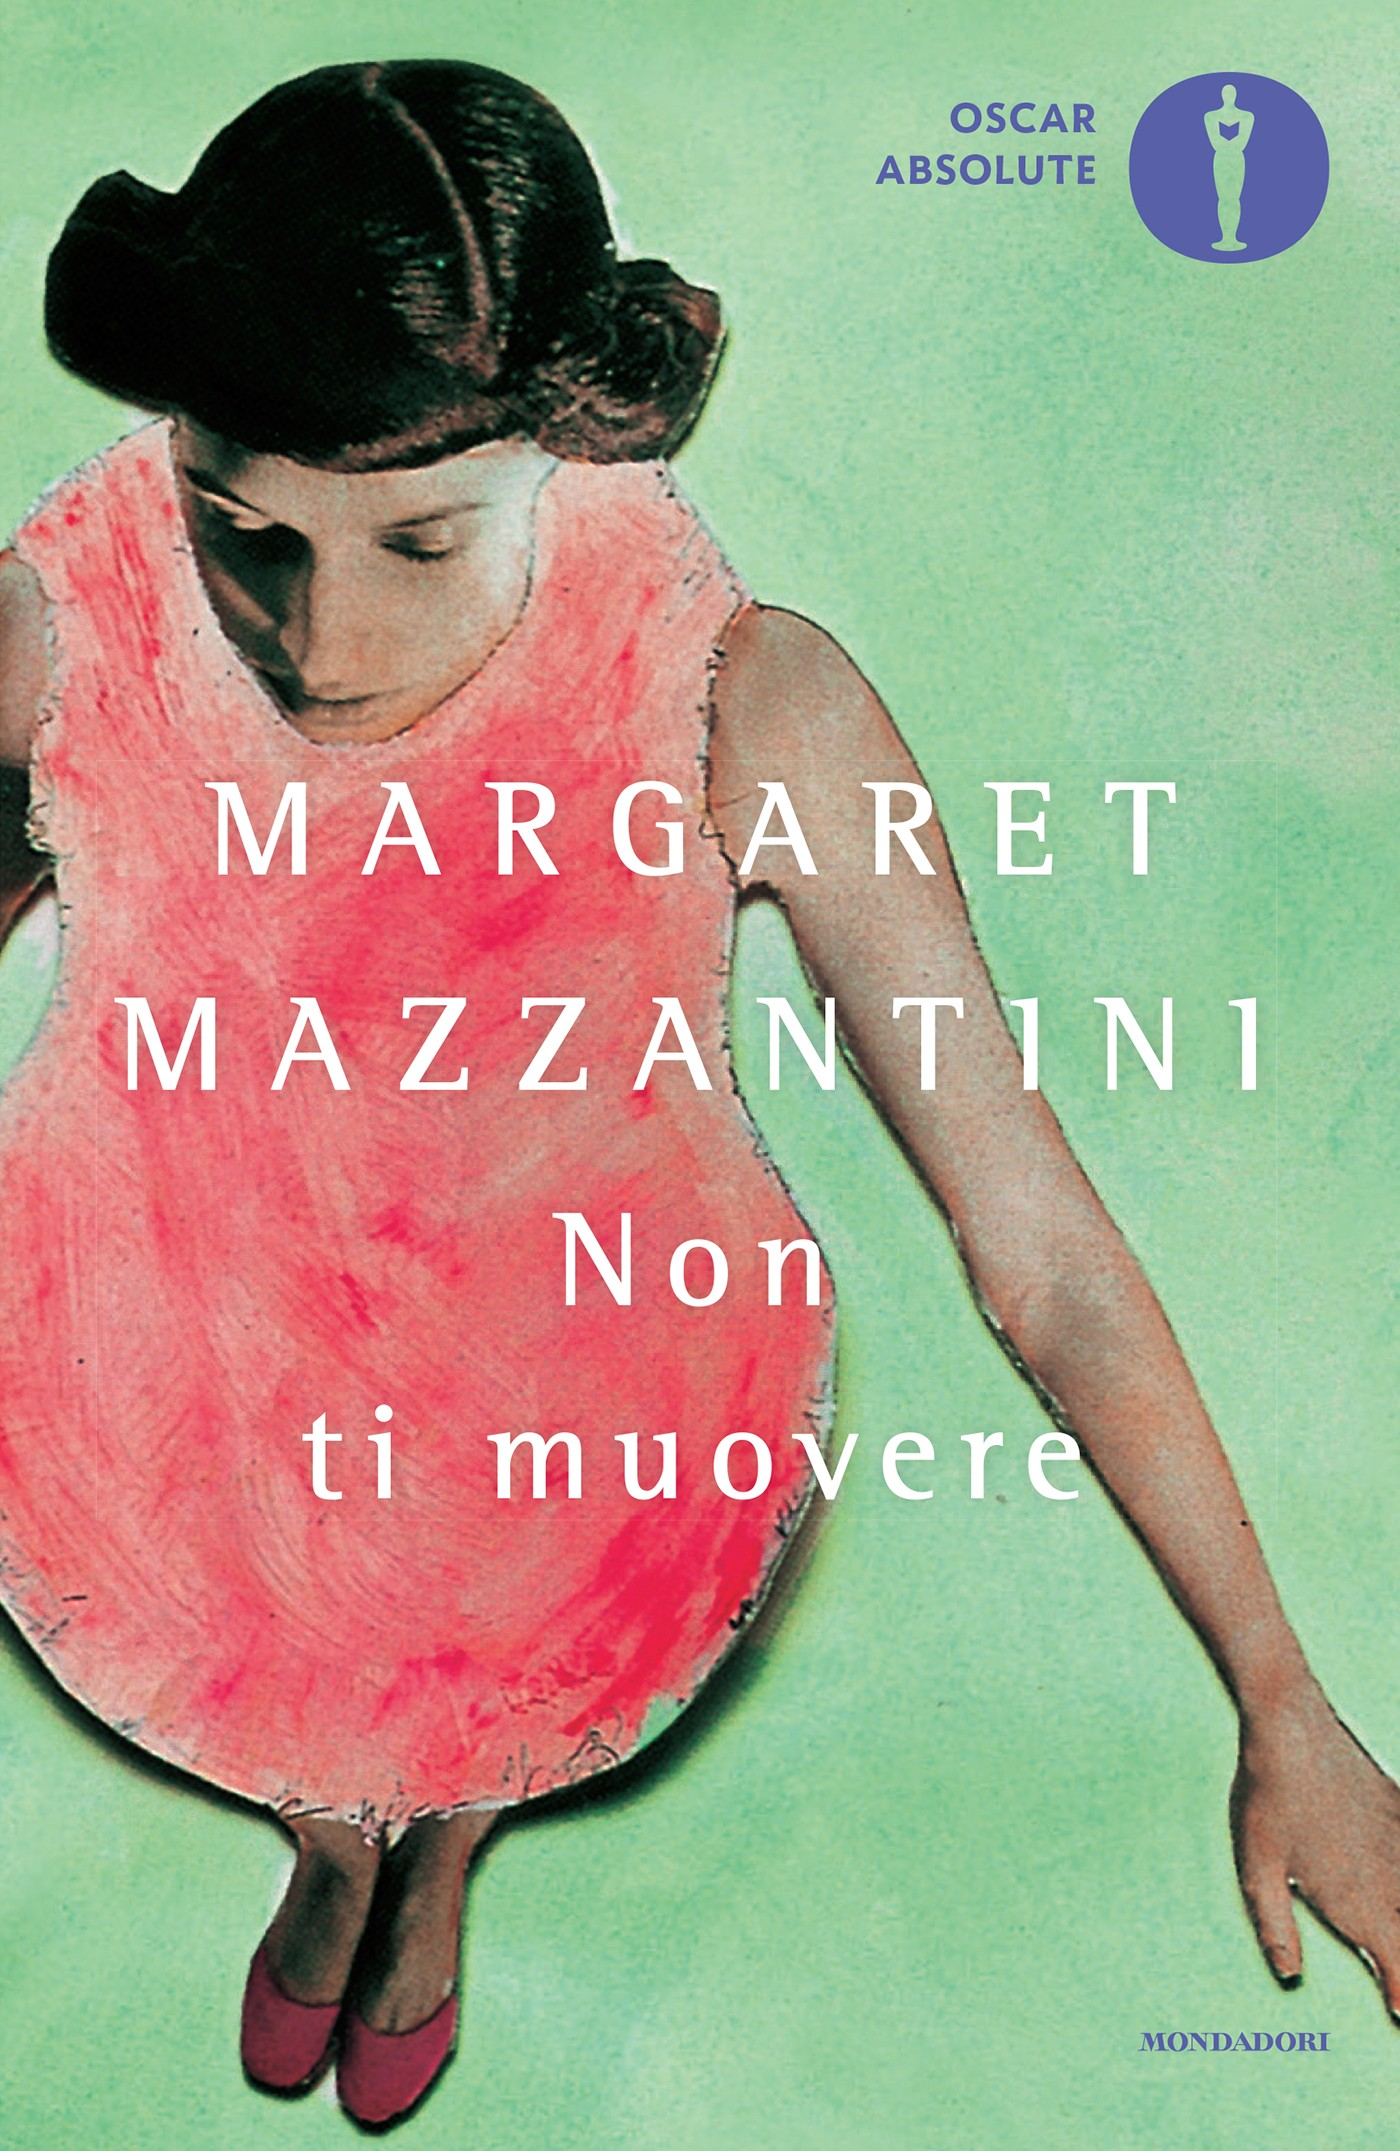 http://alessandria.bookrepublic.it/api/books/9788852012211/cover